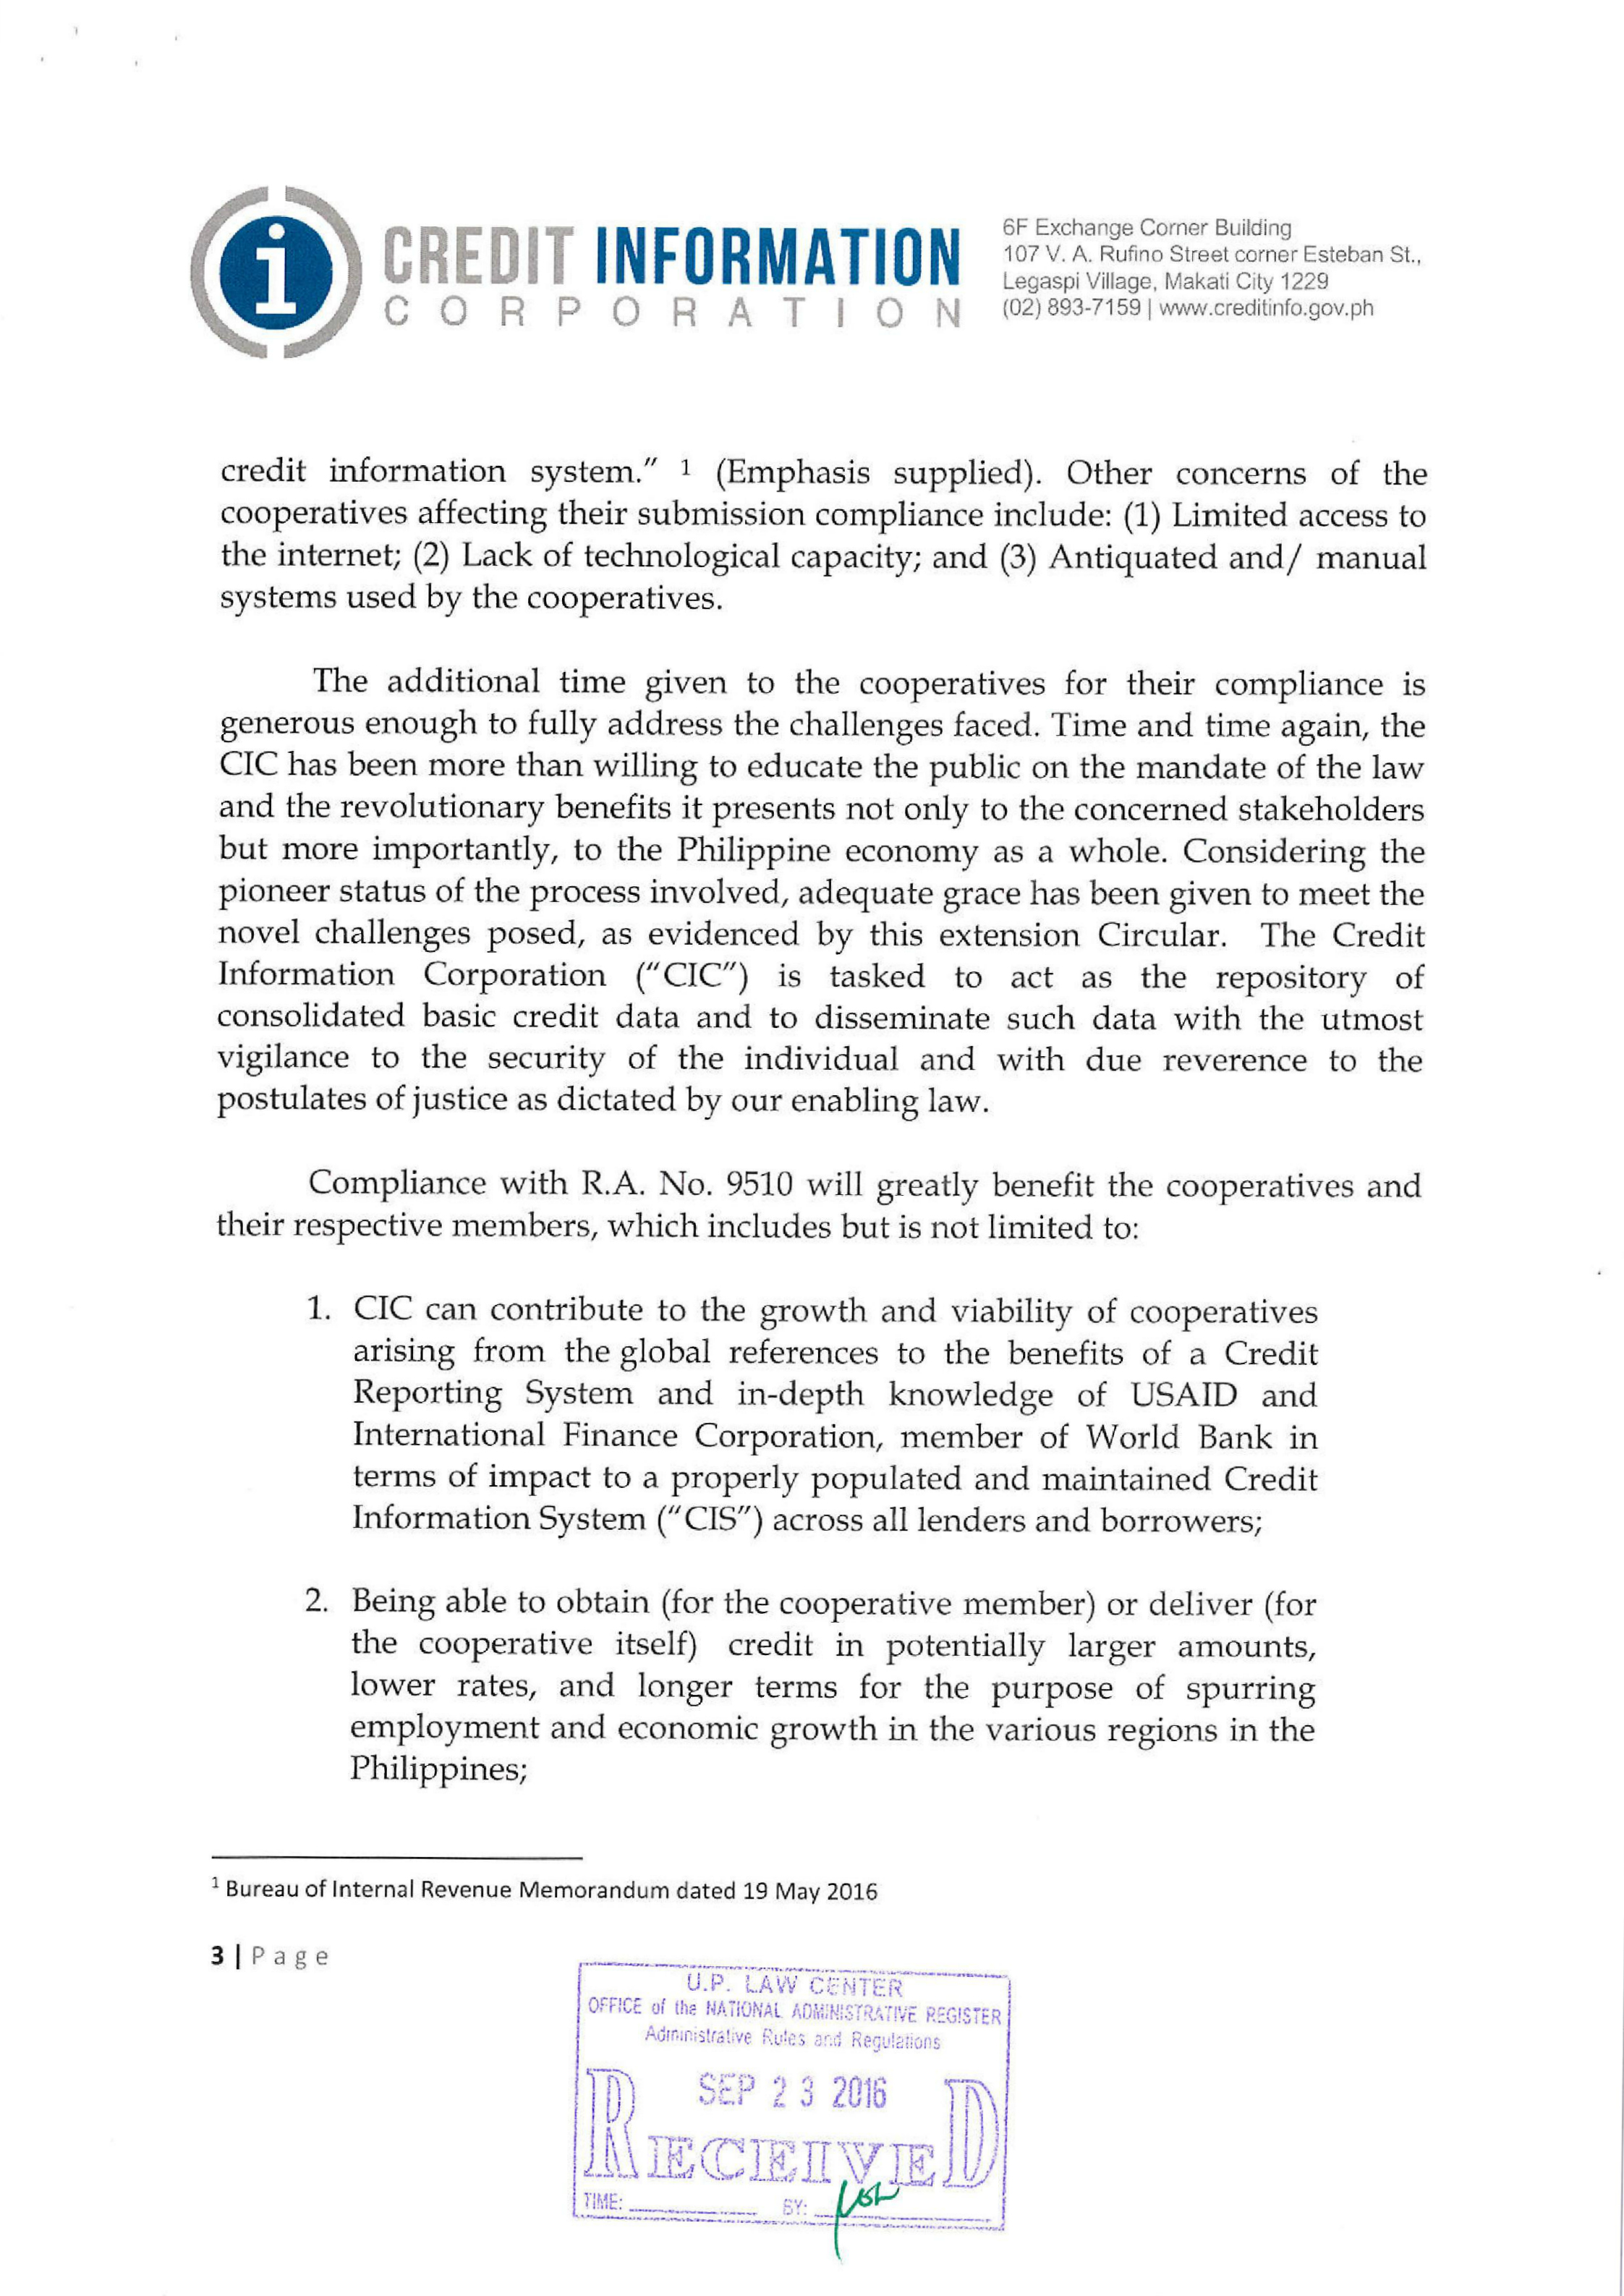 cic-circular-no-2016-04-ser-of-2016-page-003